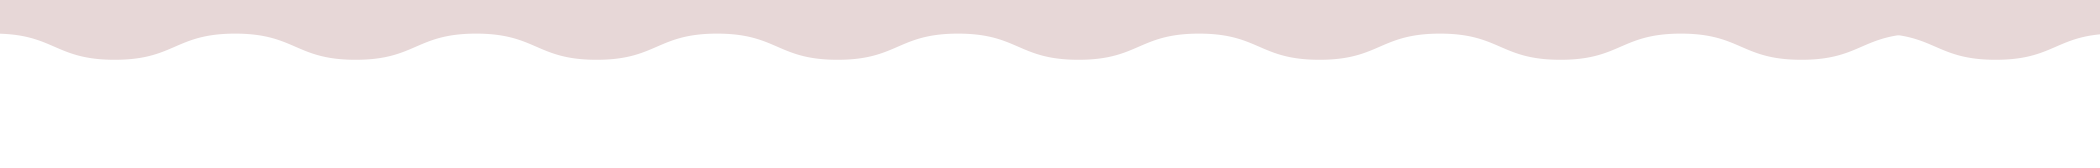 http://pastry.bold-themes.com/wp-content/uploads/2017/10/pink_divider_top.png